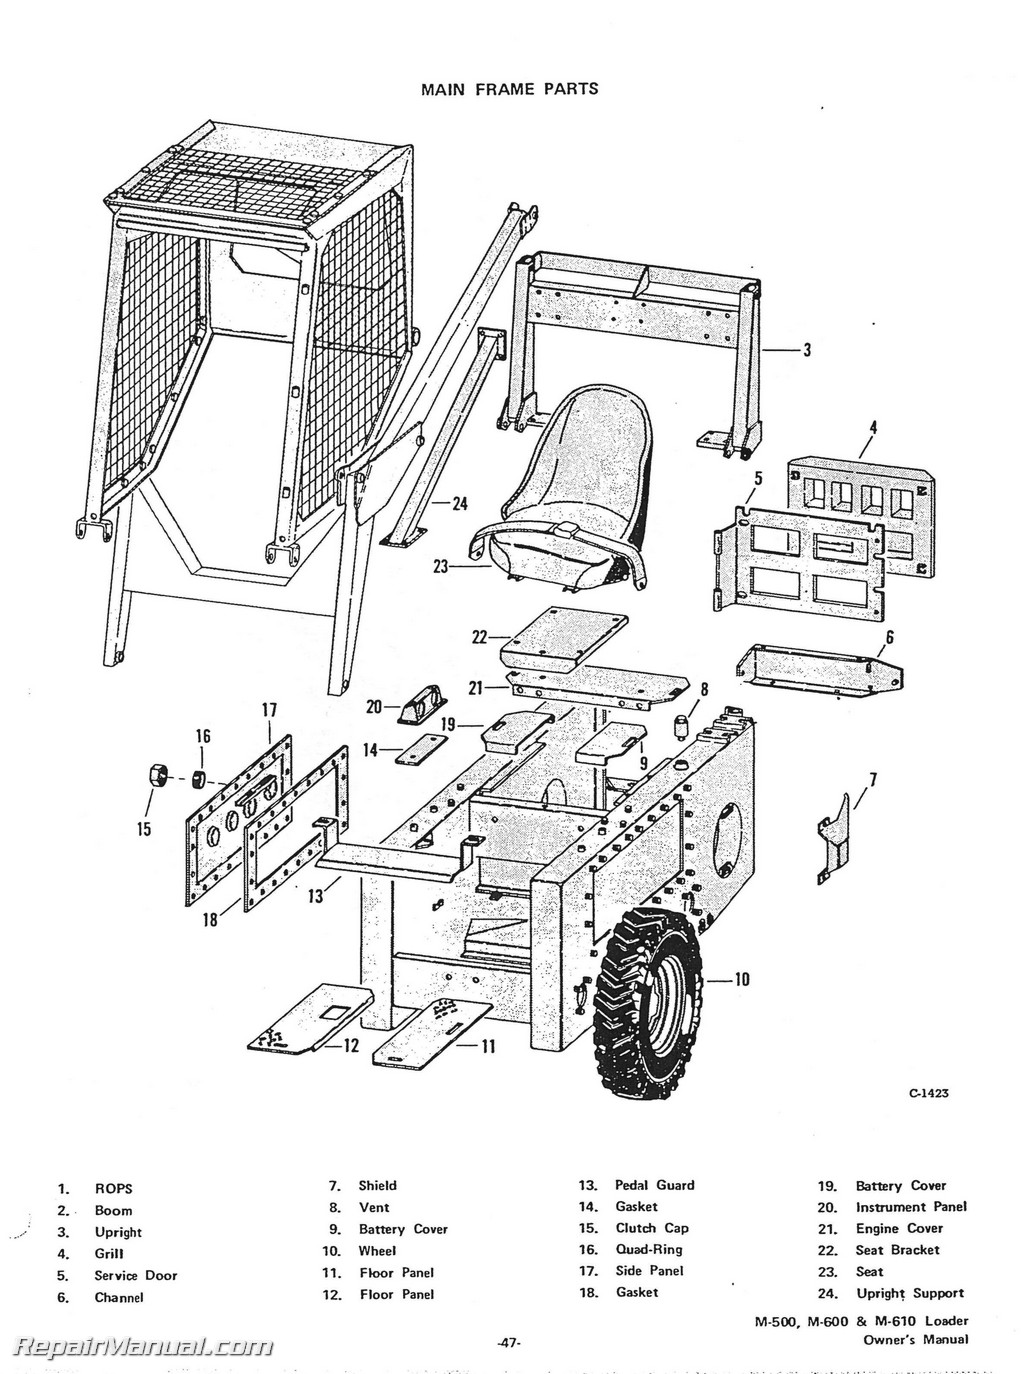 Skid Steer Case C Parts Diagram Images Auto Fuse Box